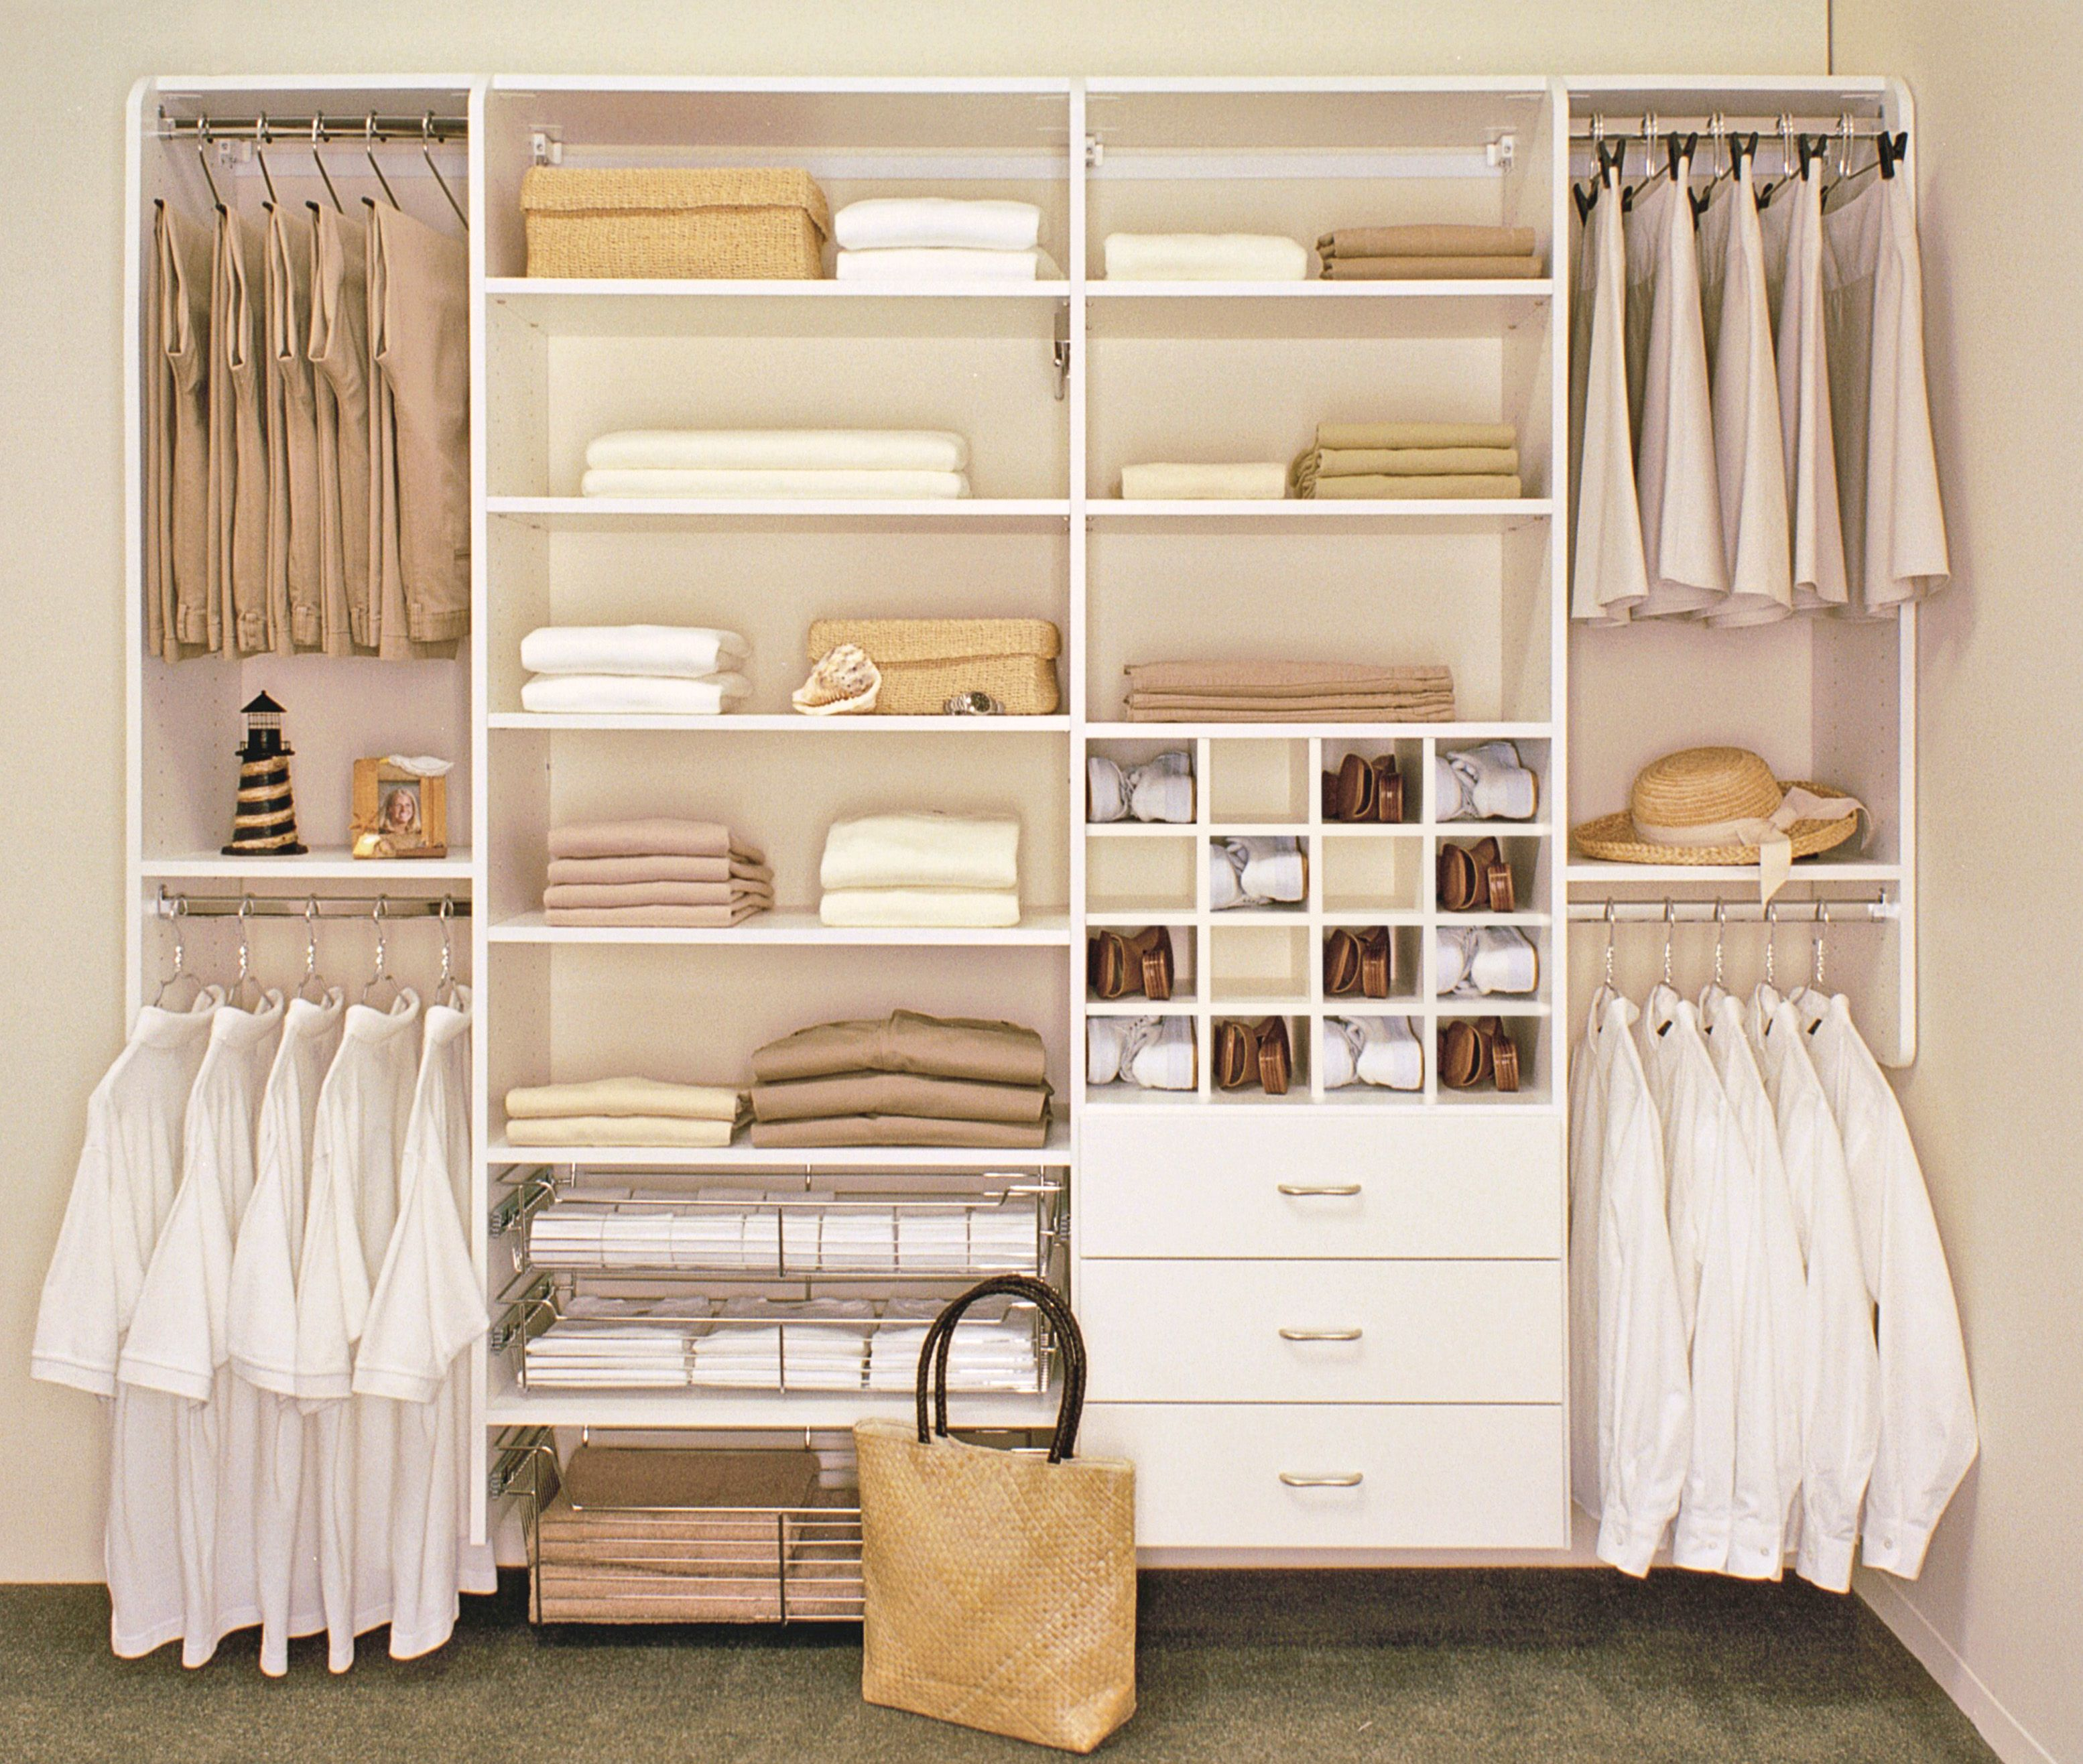 Bedroom Closet Shelving Ideas Model Interior fresh simple closet design ideas | roselawnlutheran